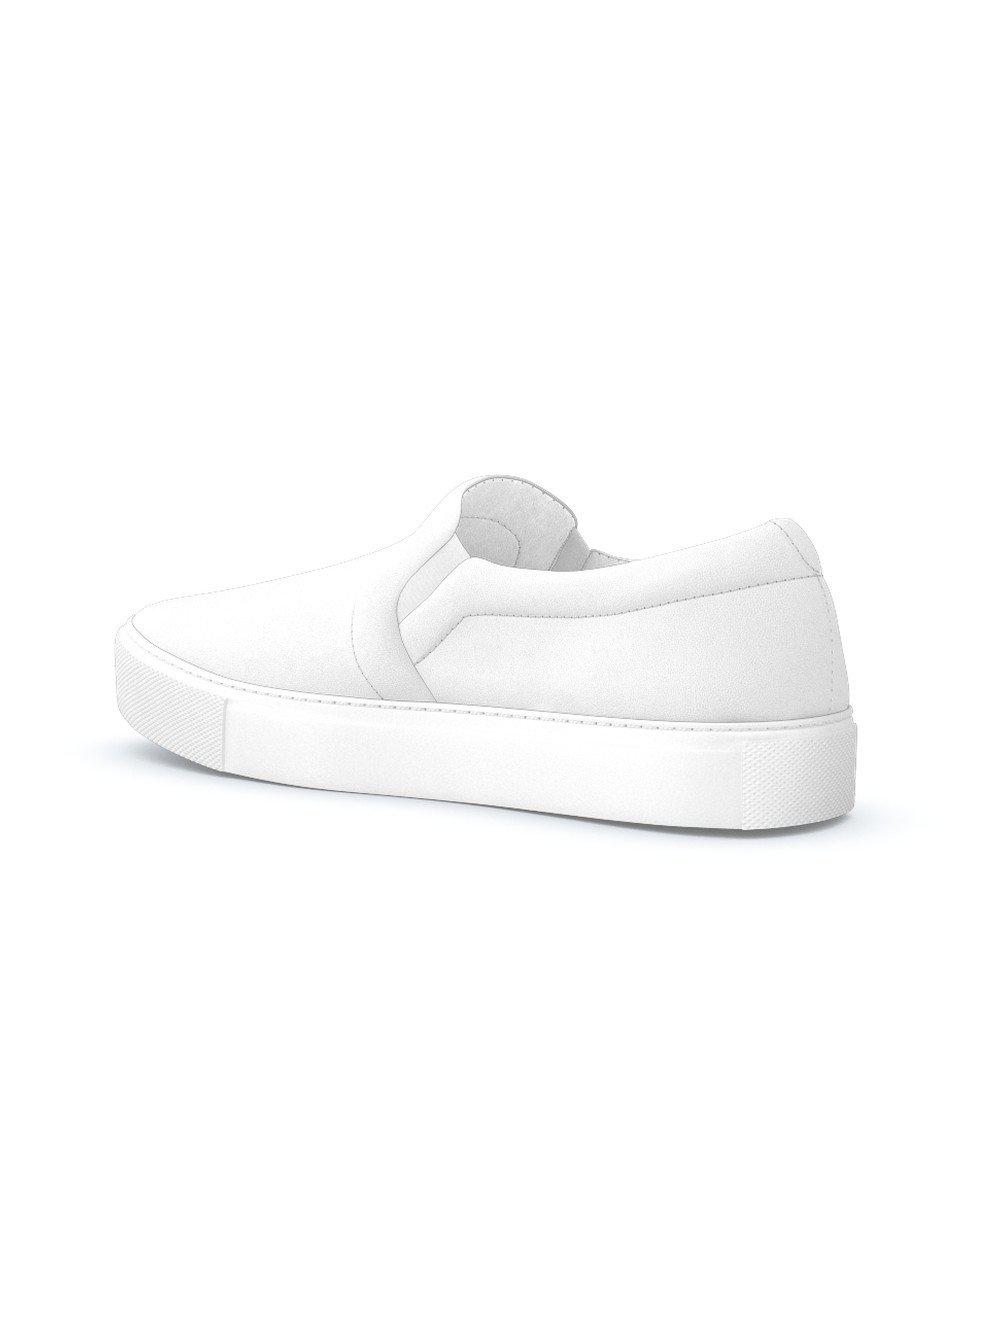 Zapatillas Maddox slip-on Swear de Ante de color Blanco